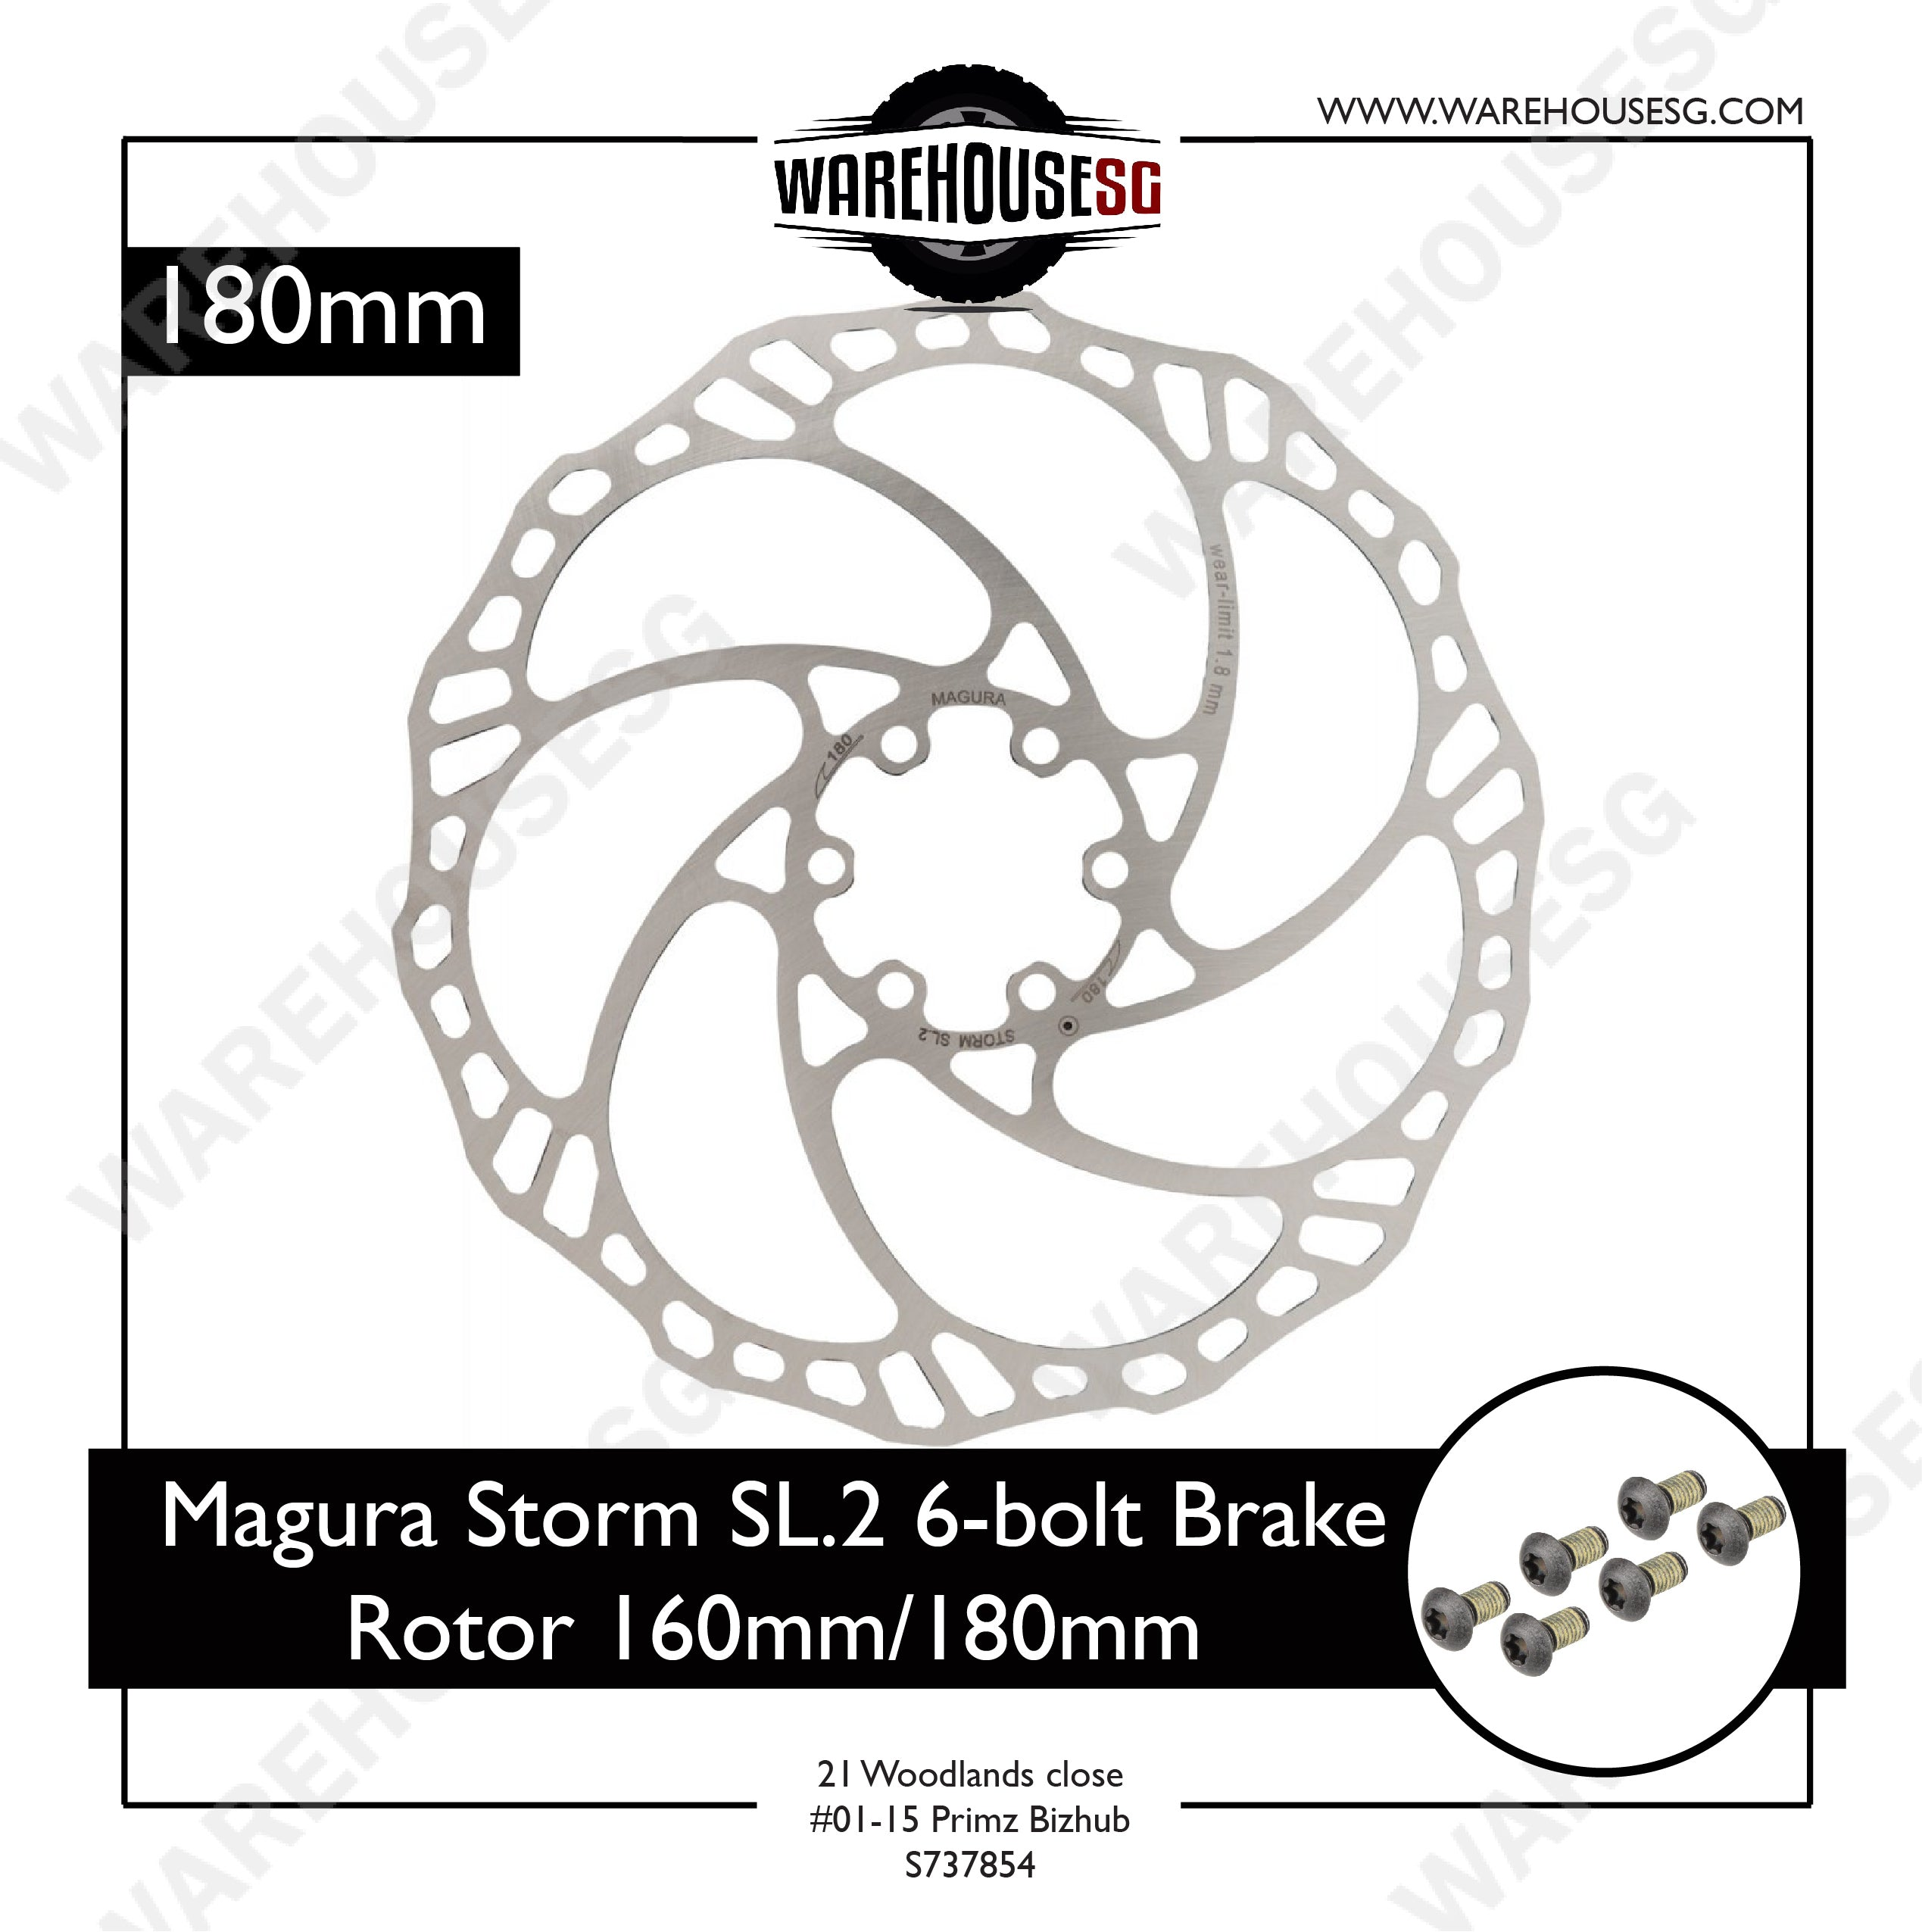 Magura Storm SL.2 6-bolt Brake Rotor 160mm/180mm